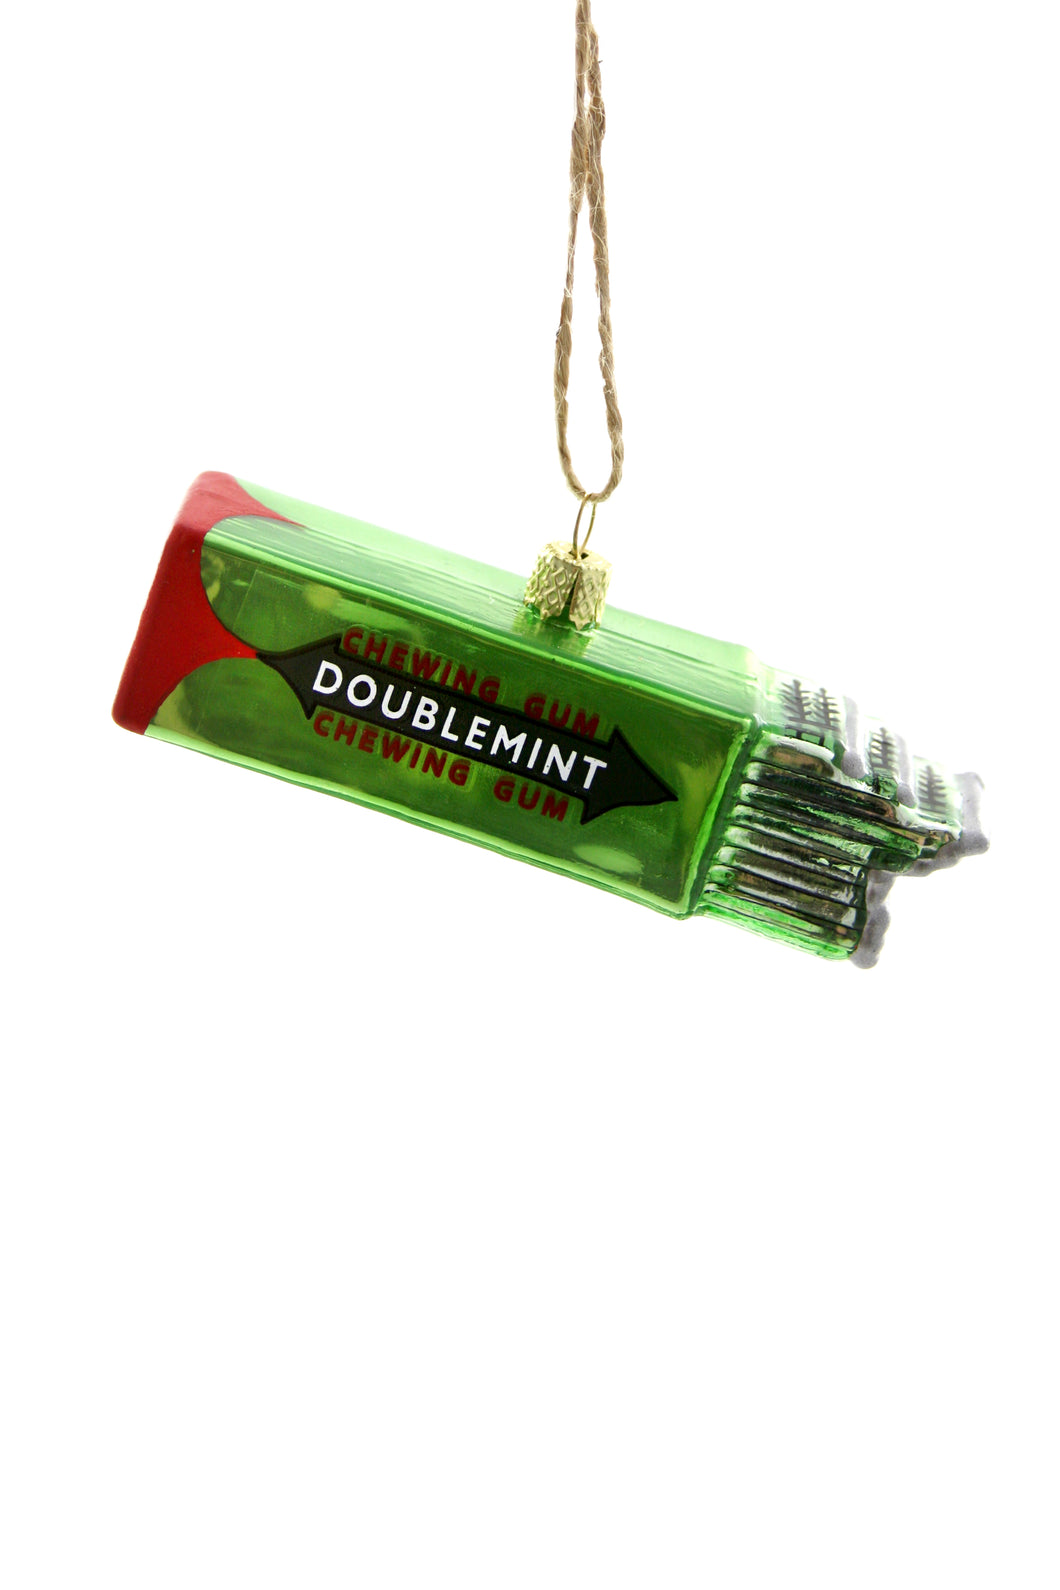 Wrigley's Chewing Gum Glass Ornament by Cody Foster & Co.